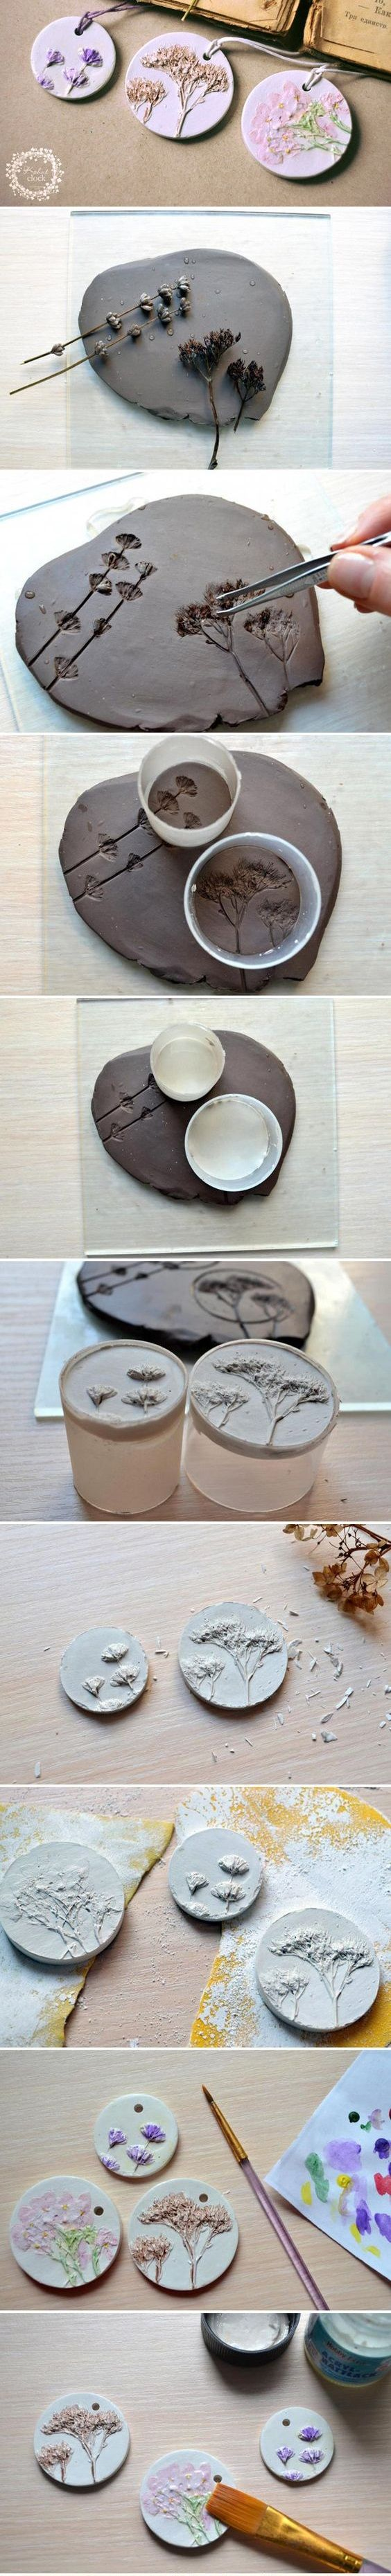 Pin by alessia càmpera on things to make pinterest clay craft